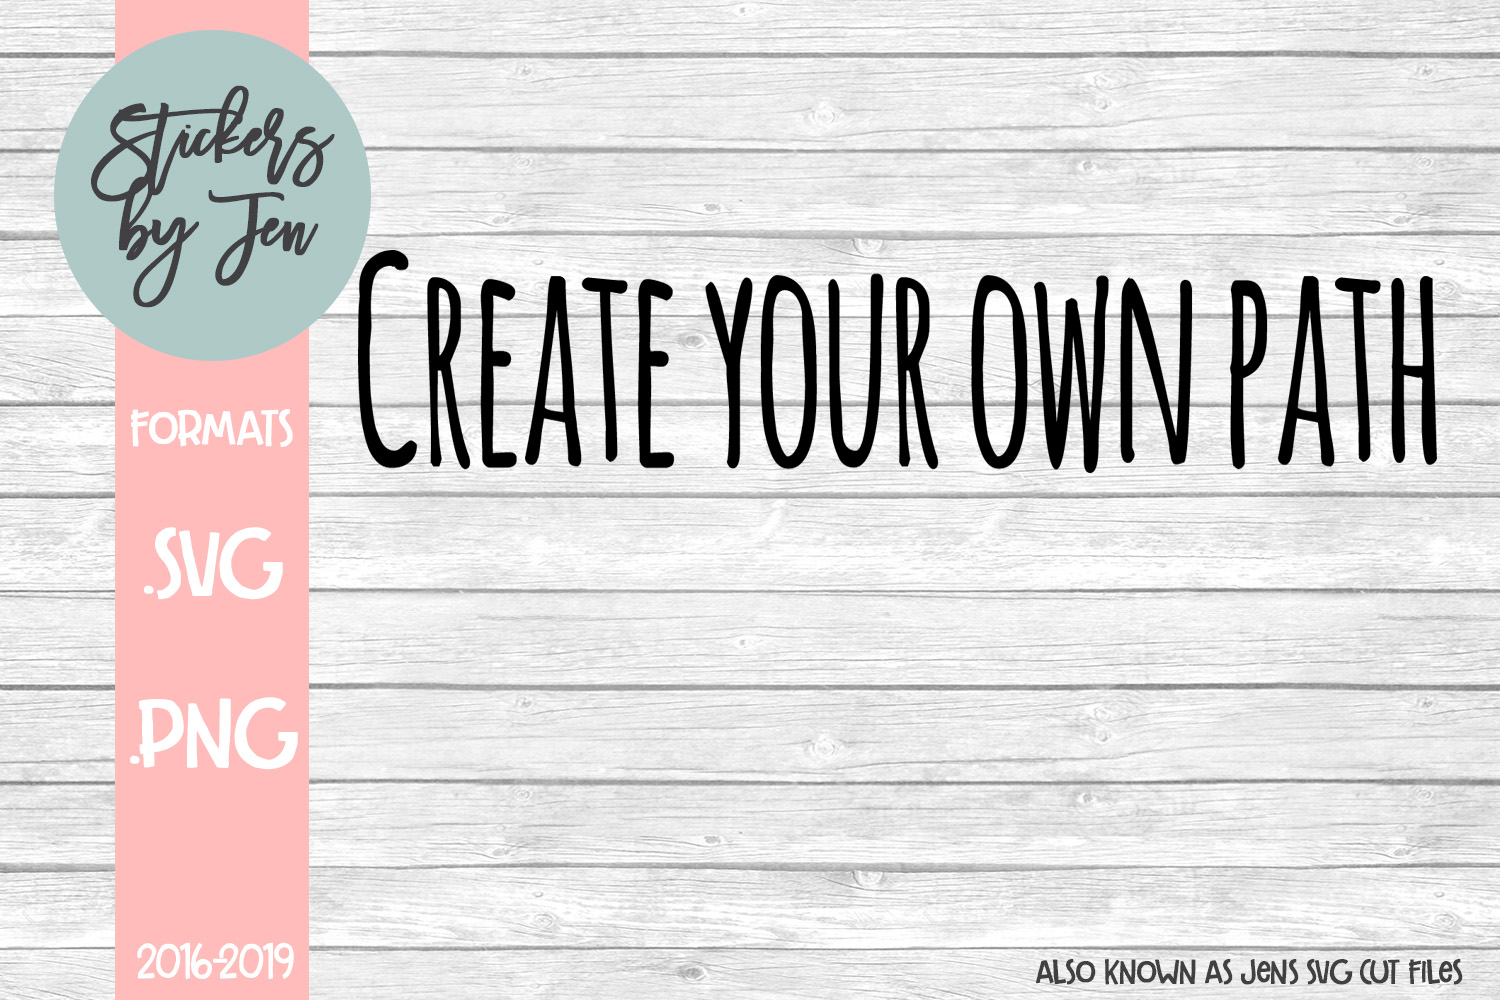 Download Free Create Your Own Path Svg Graphic By Stickers By Jennifer for Cricut Explore, Silhouette and other cutting machines.